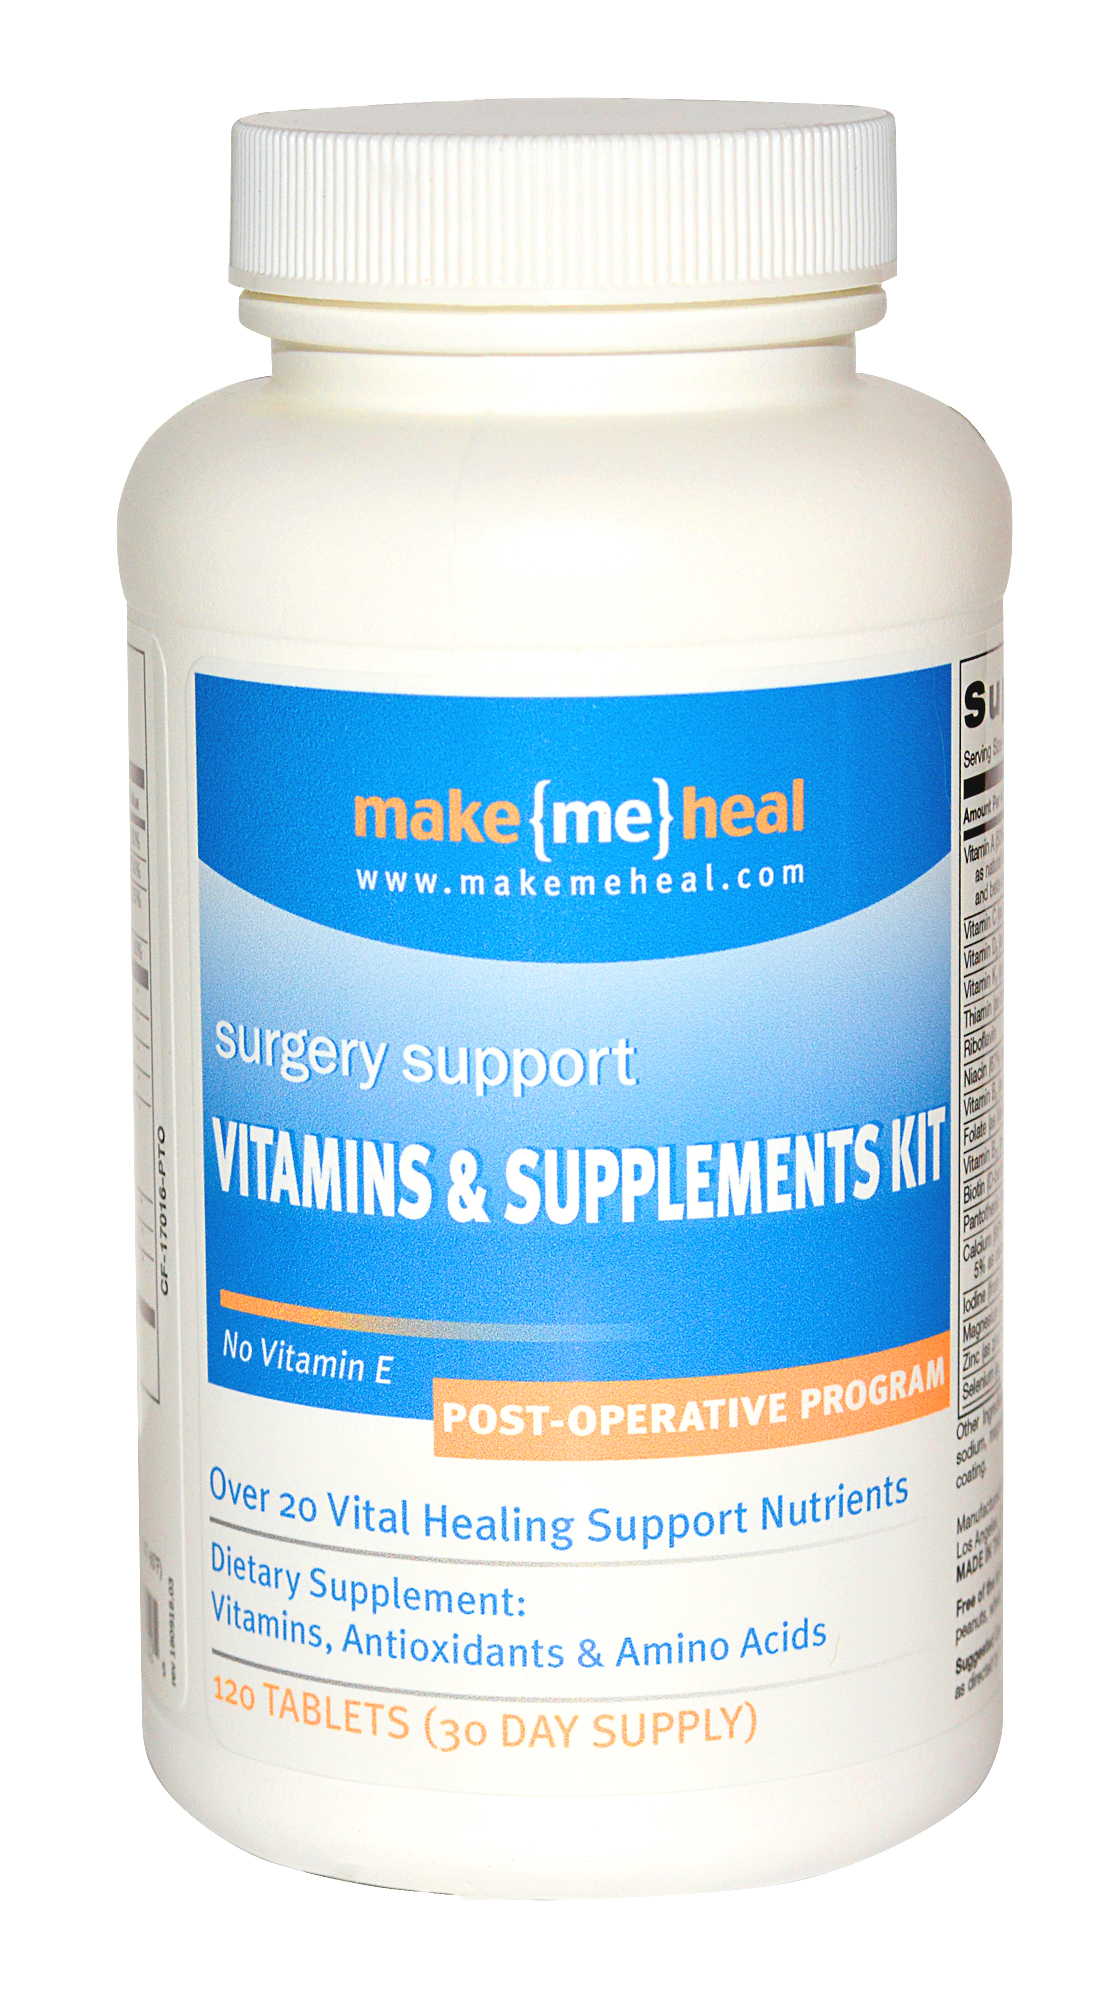 MakeMeHeal Plastic Surgery Healing Supplements & Vitamins - Post-Op Formula (w/Bromelain)